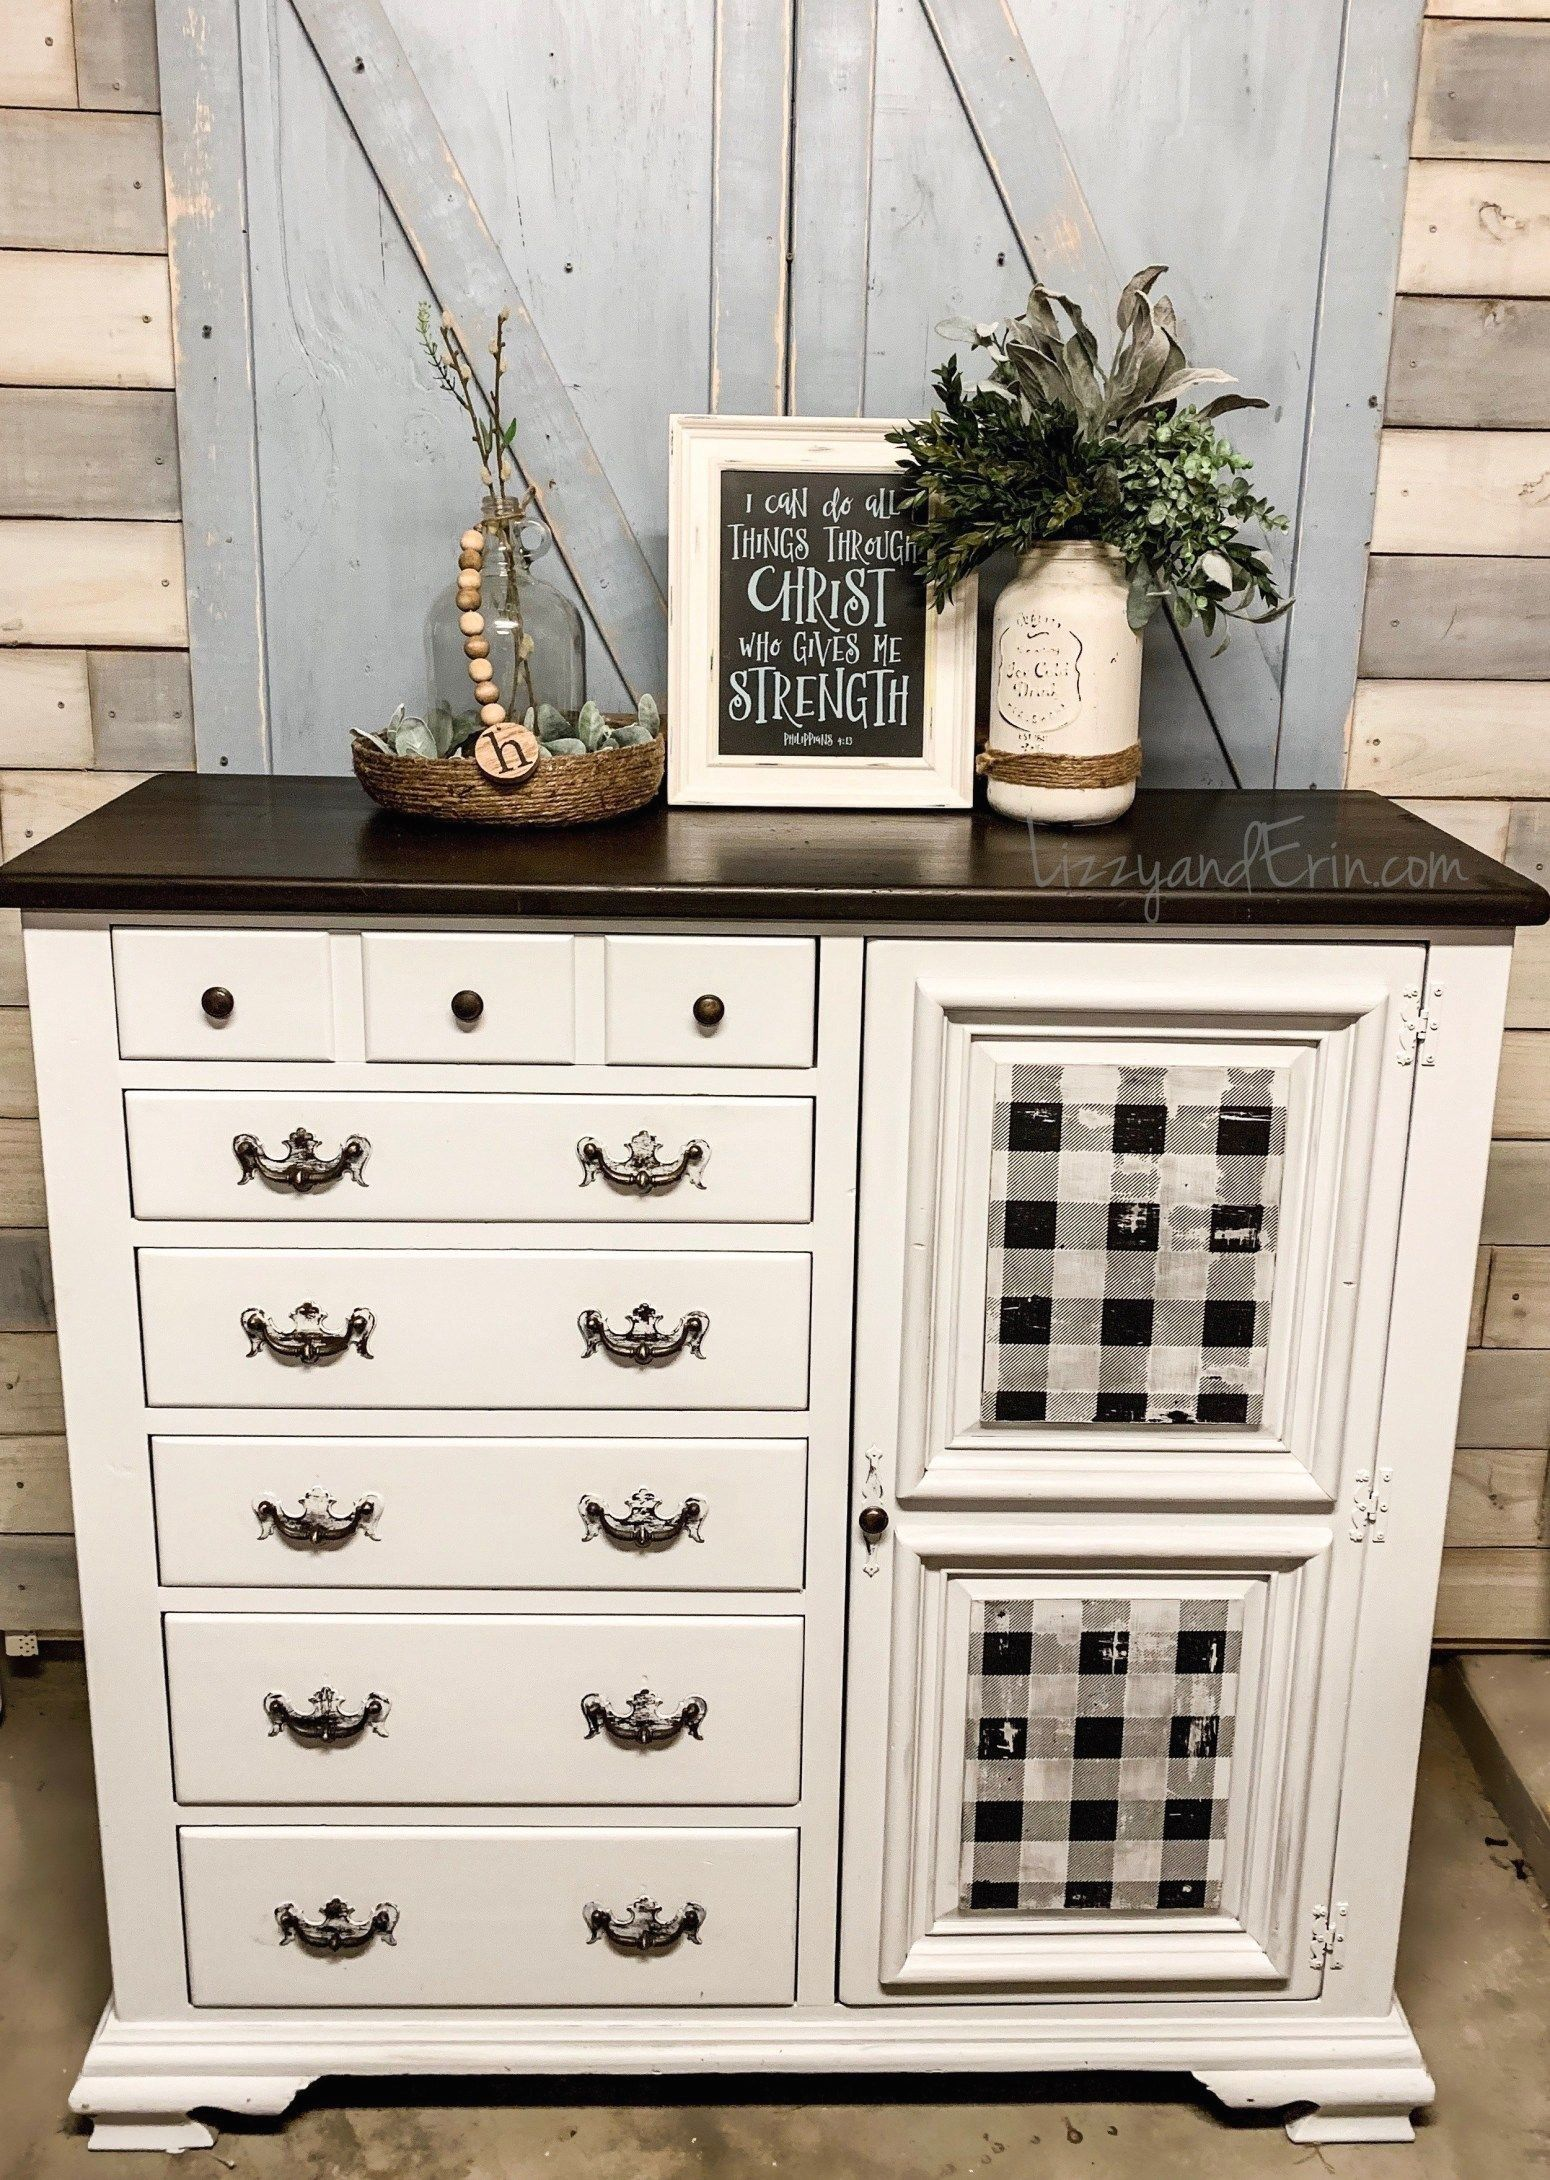 Buffalo Check Dresser Makeover Before And After Lizzy Erin 1000 In 2020 Dresser Makeover Makeover Before And After Diy Dresser Makeover